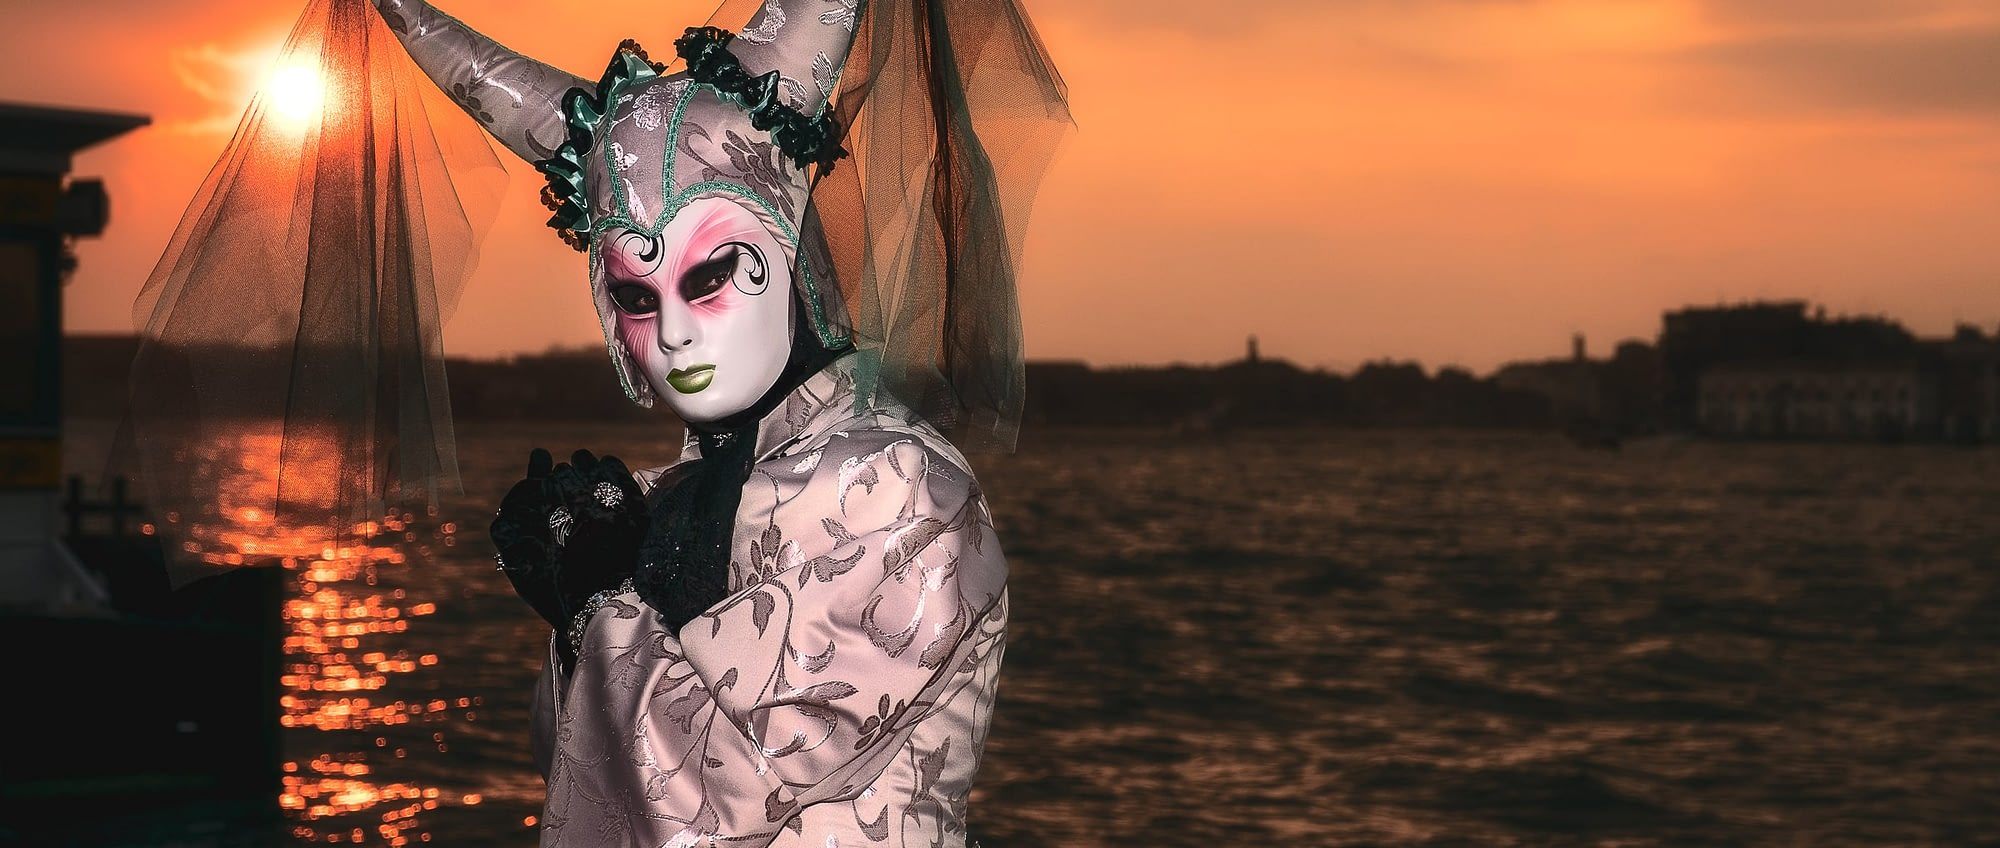 Nick Tempest at San Giorgio, Venice, Italy during sunset. Photographed during Venice Carnival.